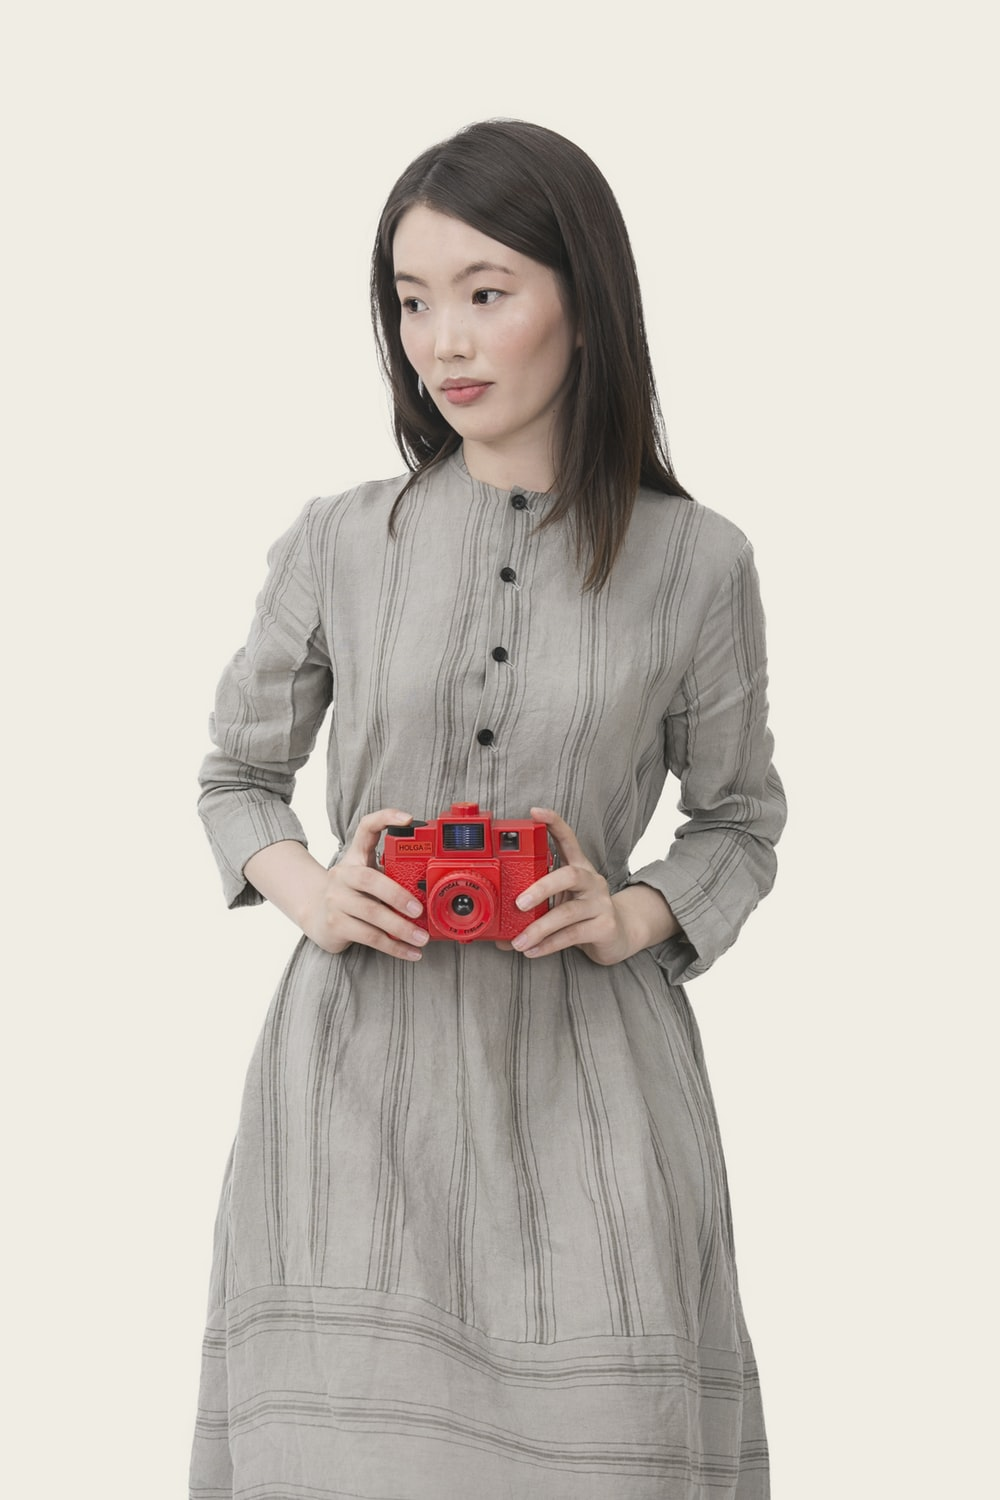 woman wearing gray striped button-up long-sleeved dress holding red point-and-shoot camera